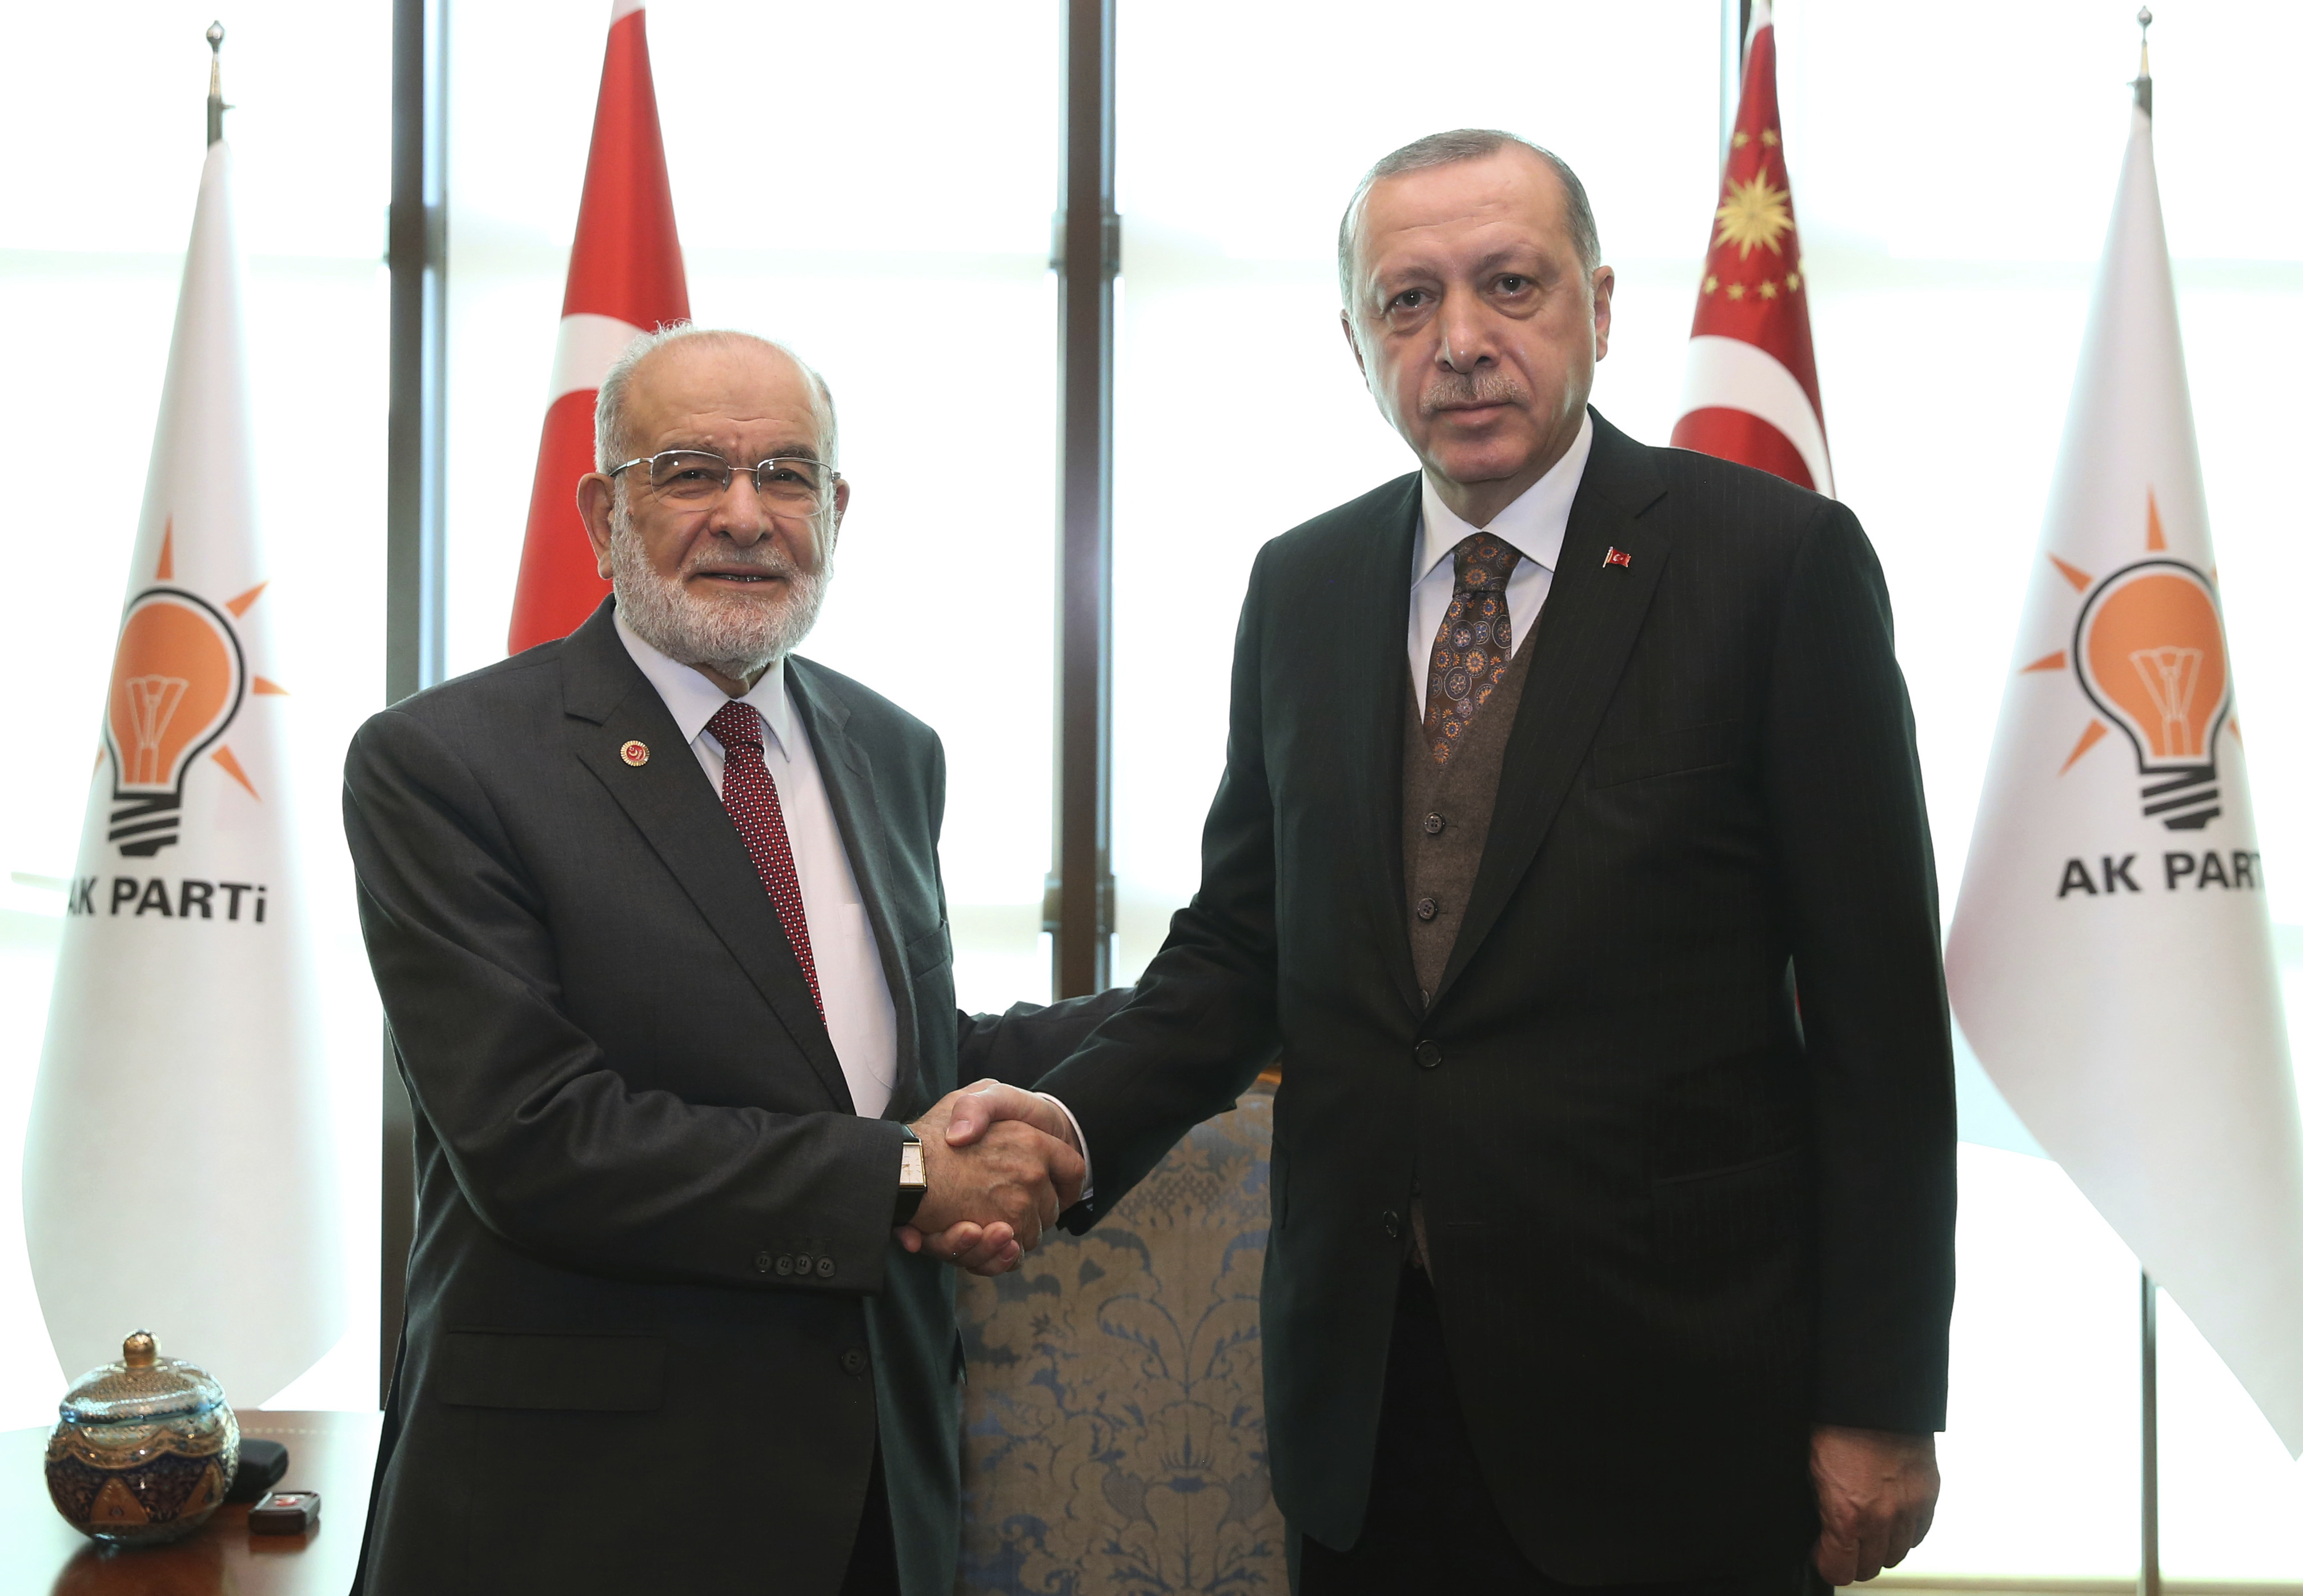 FILE - Turkey's President Recep Tayyip Erdogan, right, shakes hands with Temel Karamollaoglu, the leader of pro-Islamic Felicity Party, before their talks in Ankara, Turkey, Feb. 9, 2018.